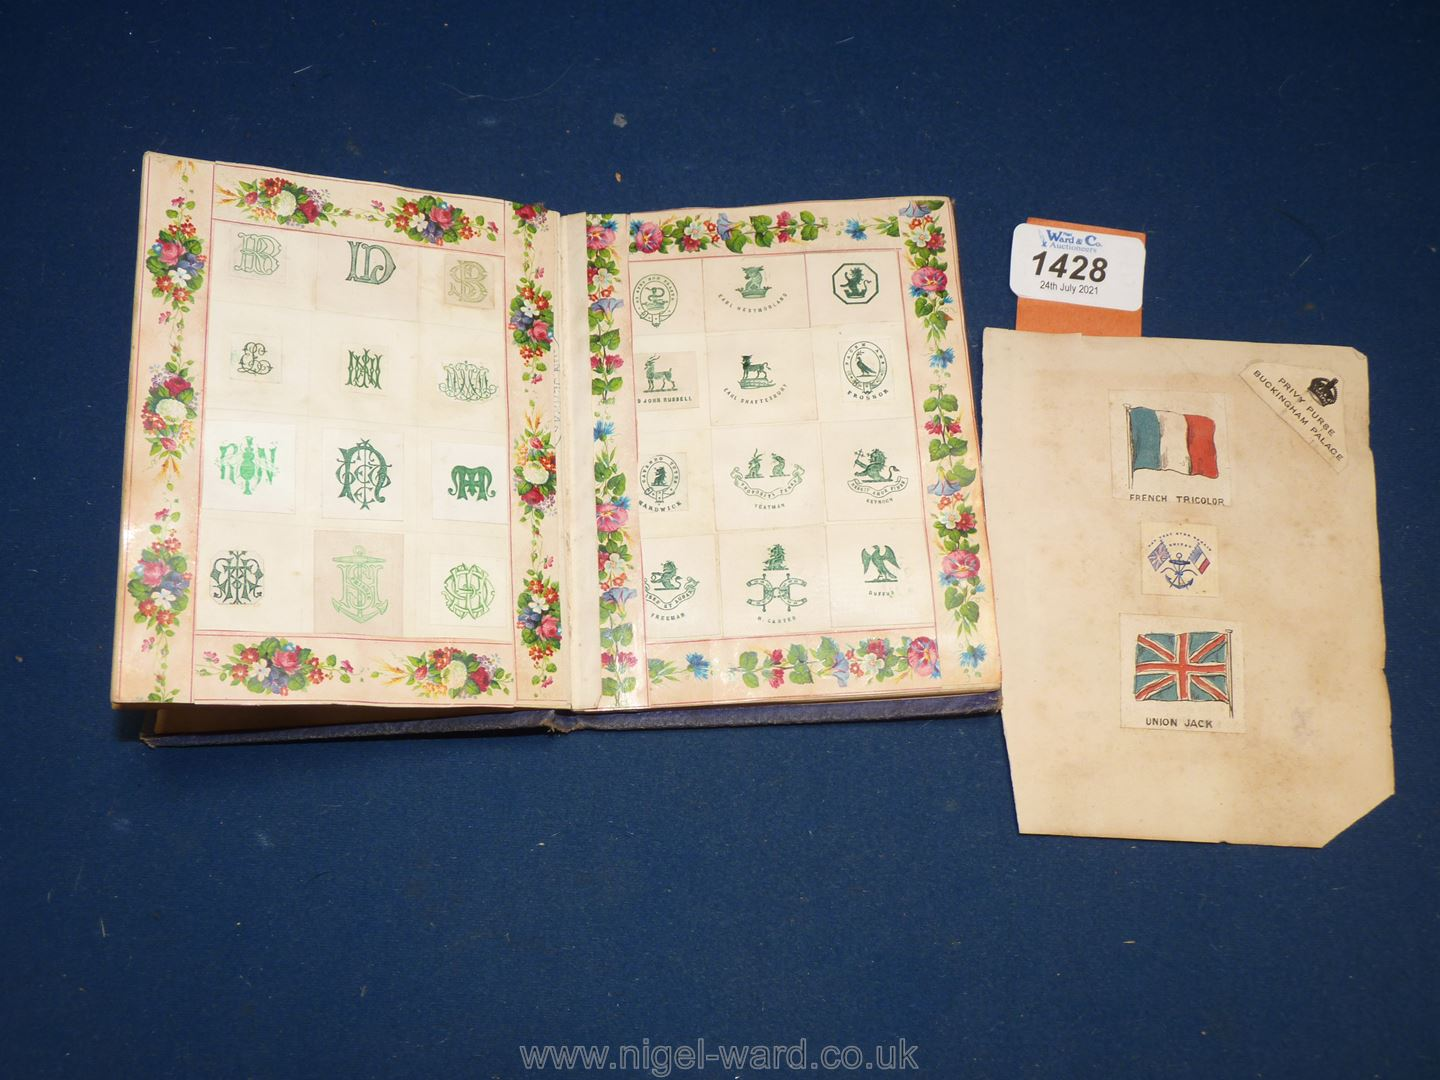 An interesting album of Coats of Arms, ciphers etc including Queen Victoria's family, nobility, - Image 4 of 7